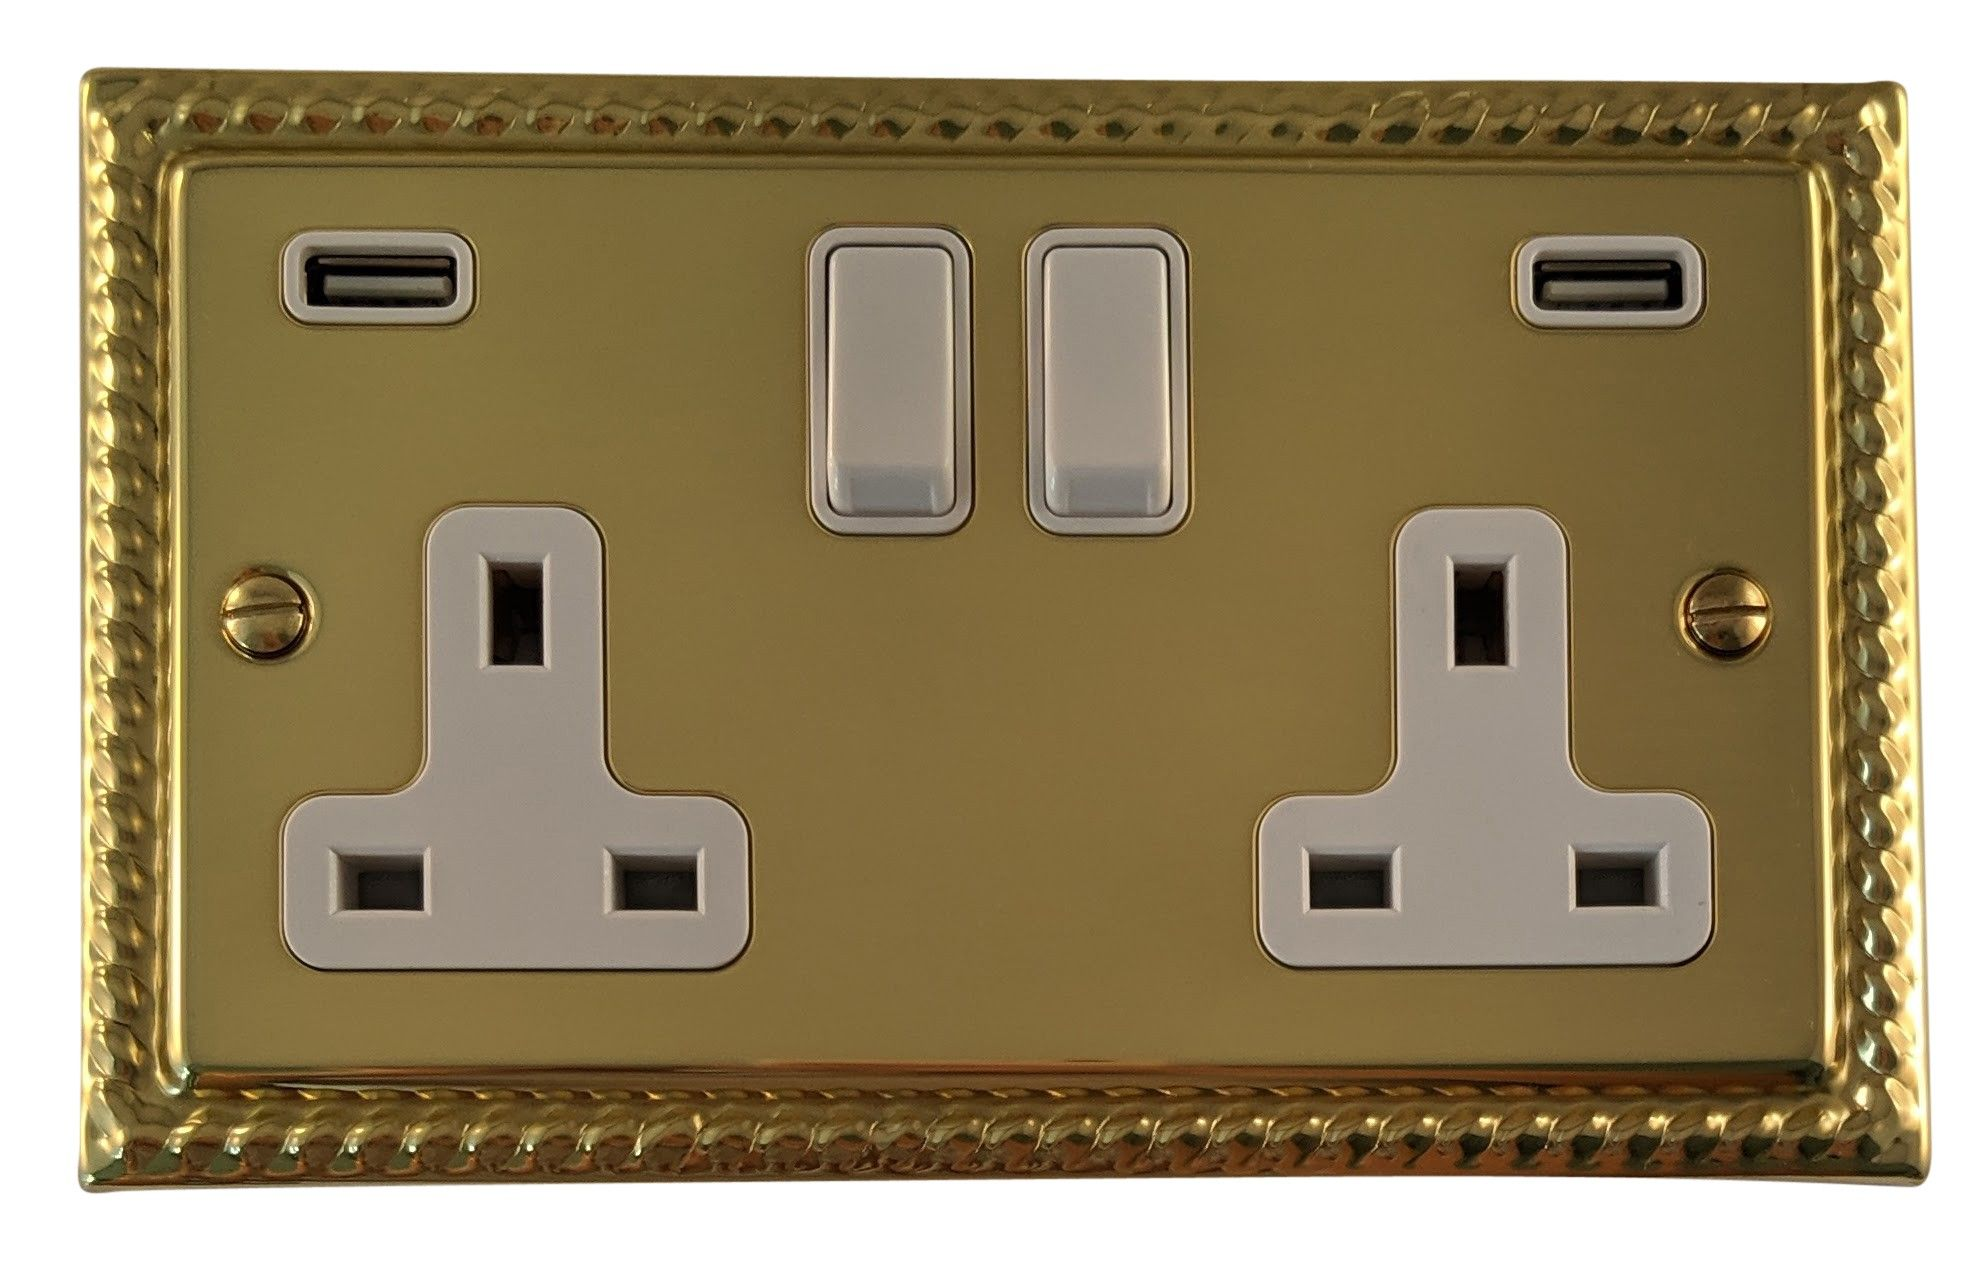 G&H MB910W Monarch Roped Polished Brass 2 Gang Double 13A Switched Plug Socket 2.1A USB